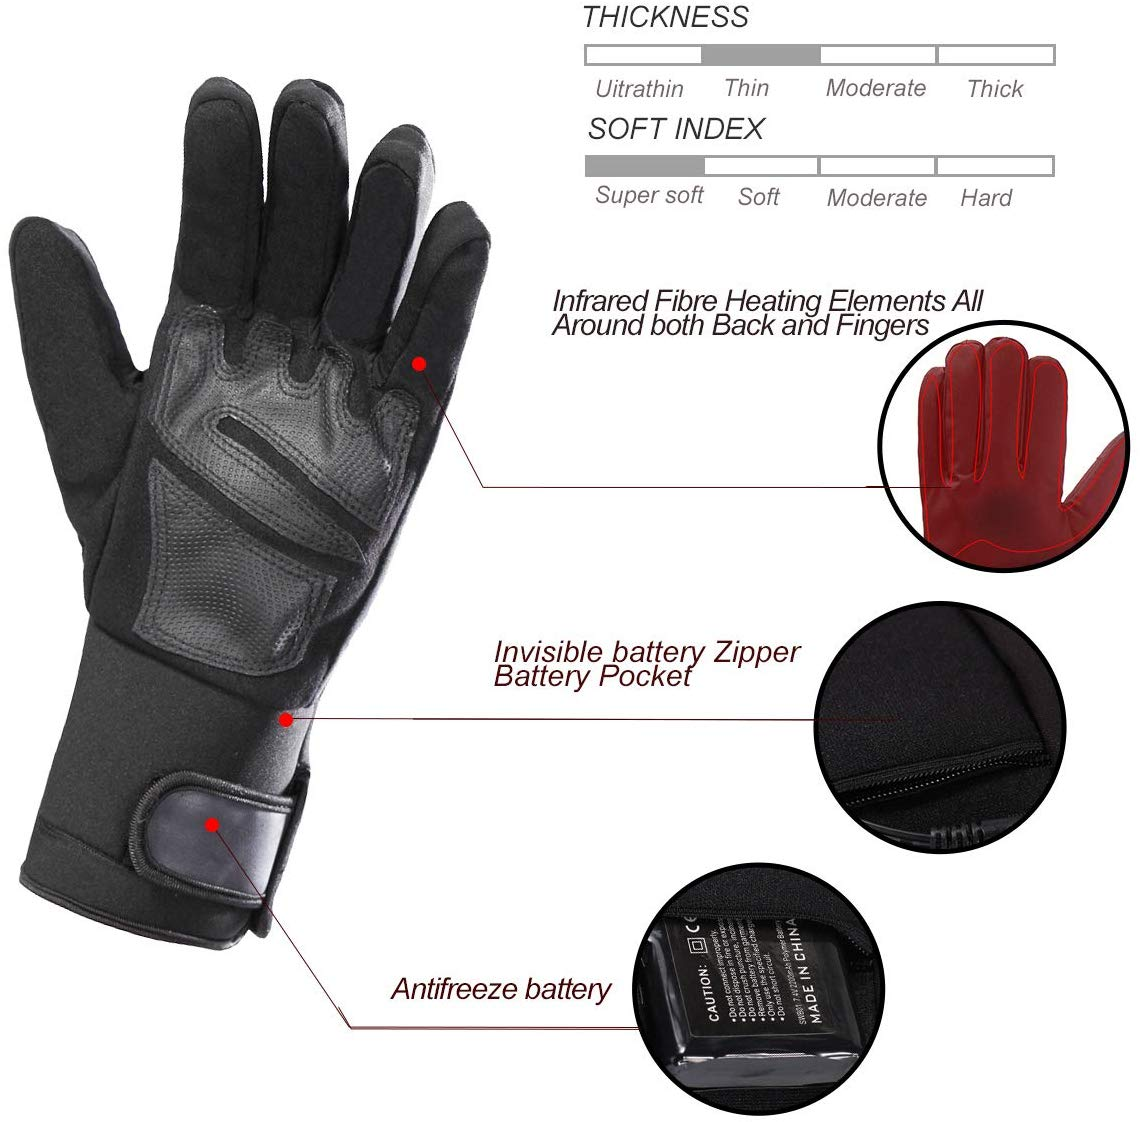 Savior is a company specializing in heating gloves. They found the perfect solution for your hand in cold winter.